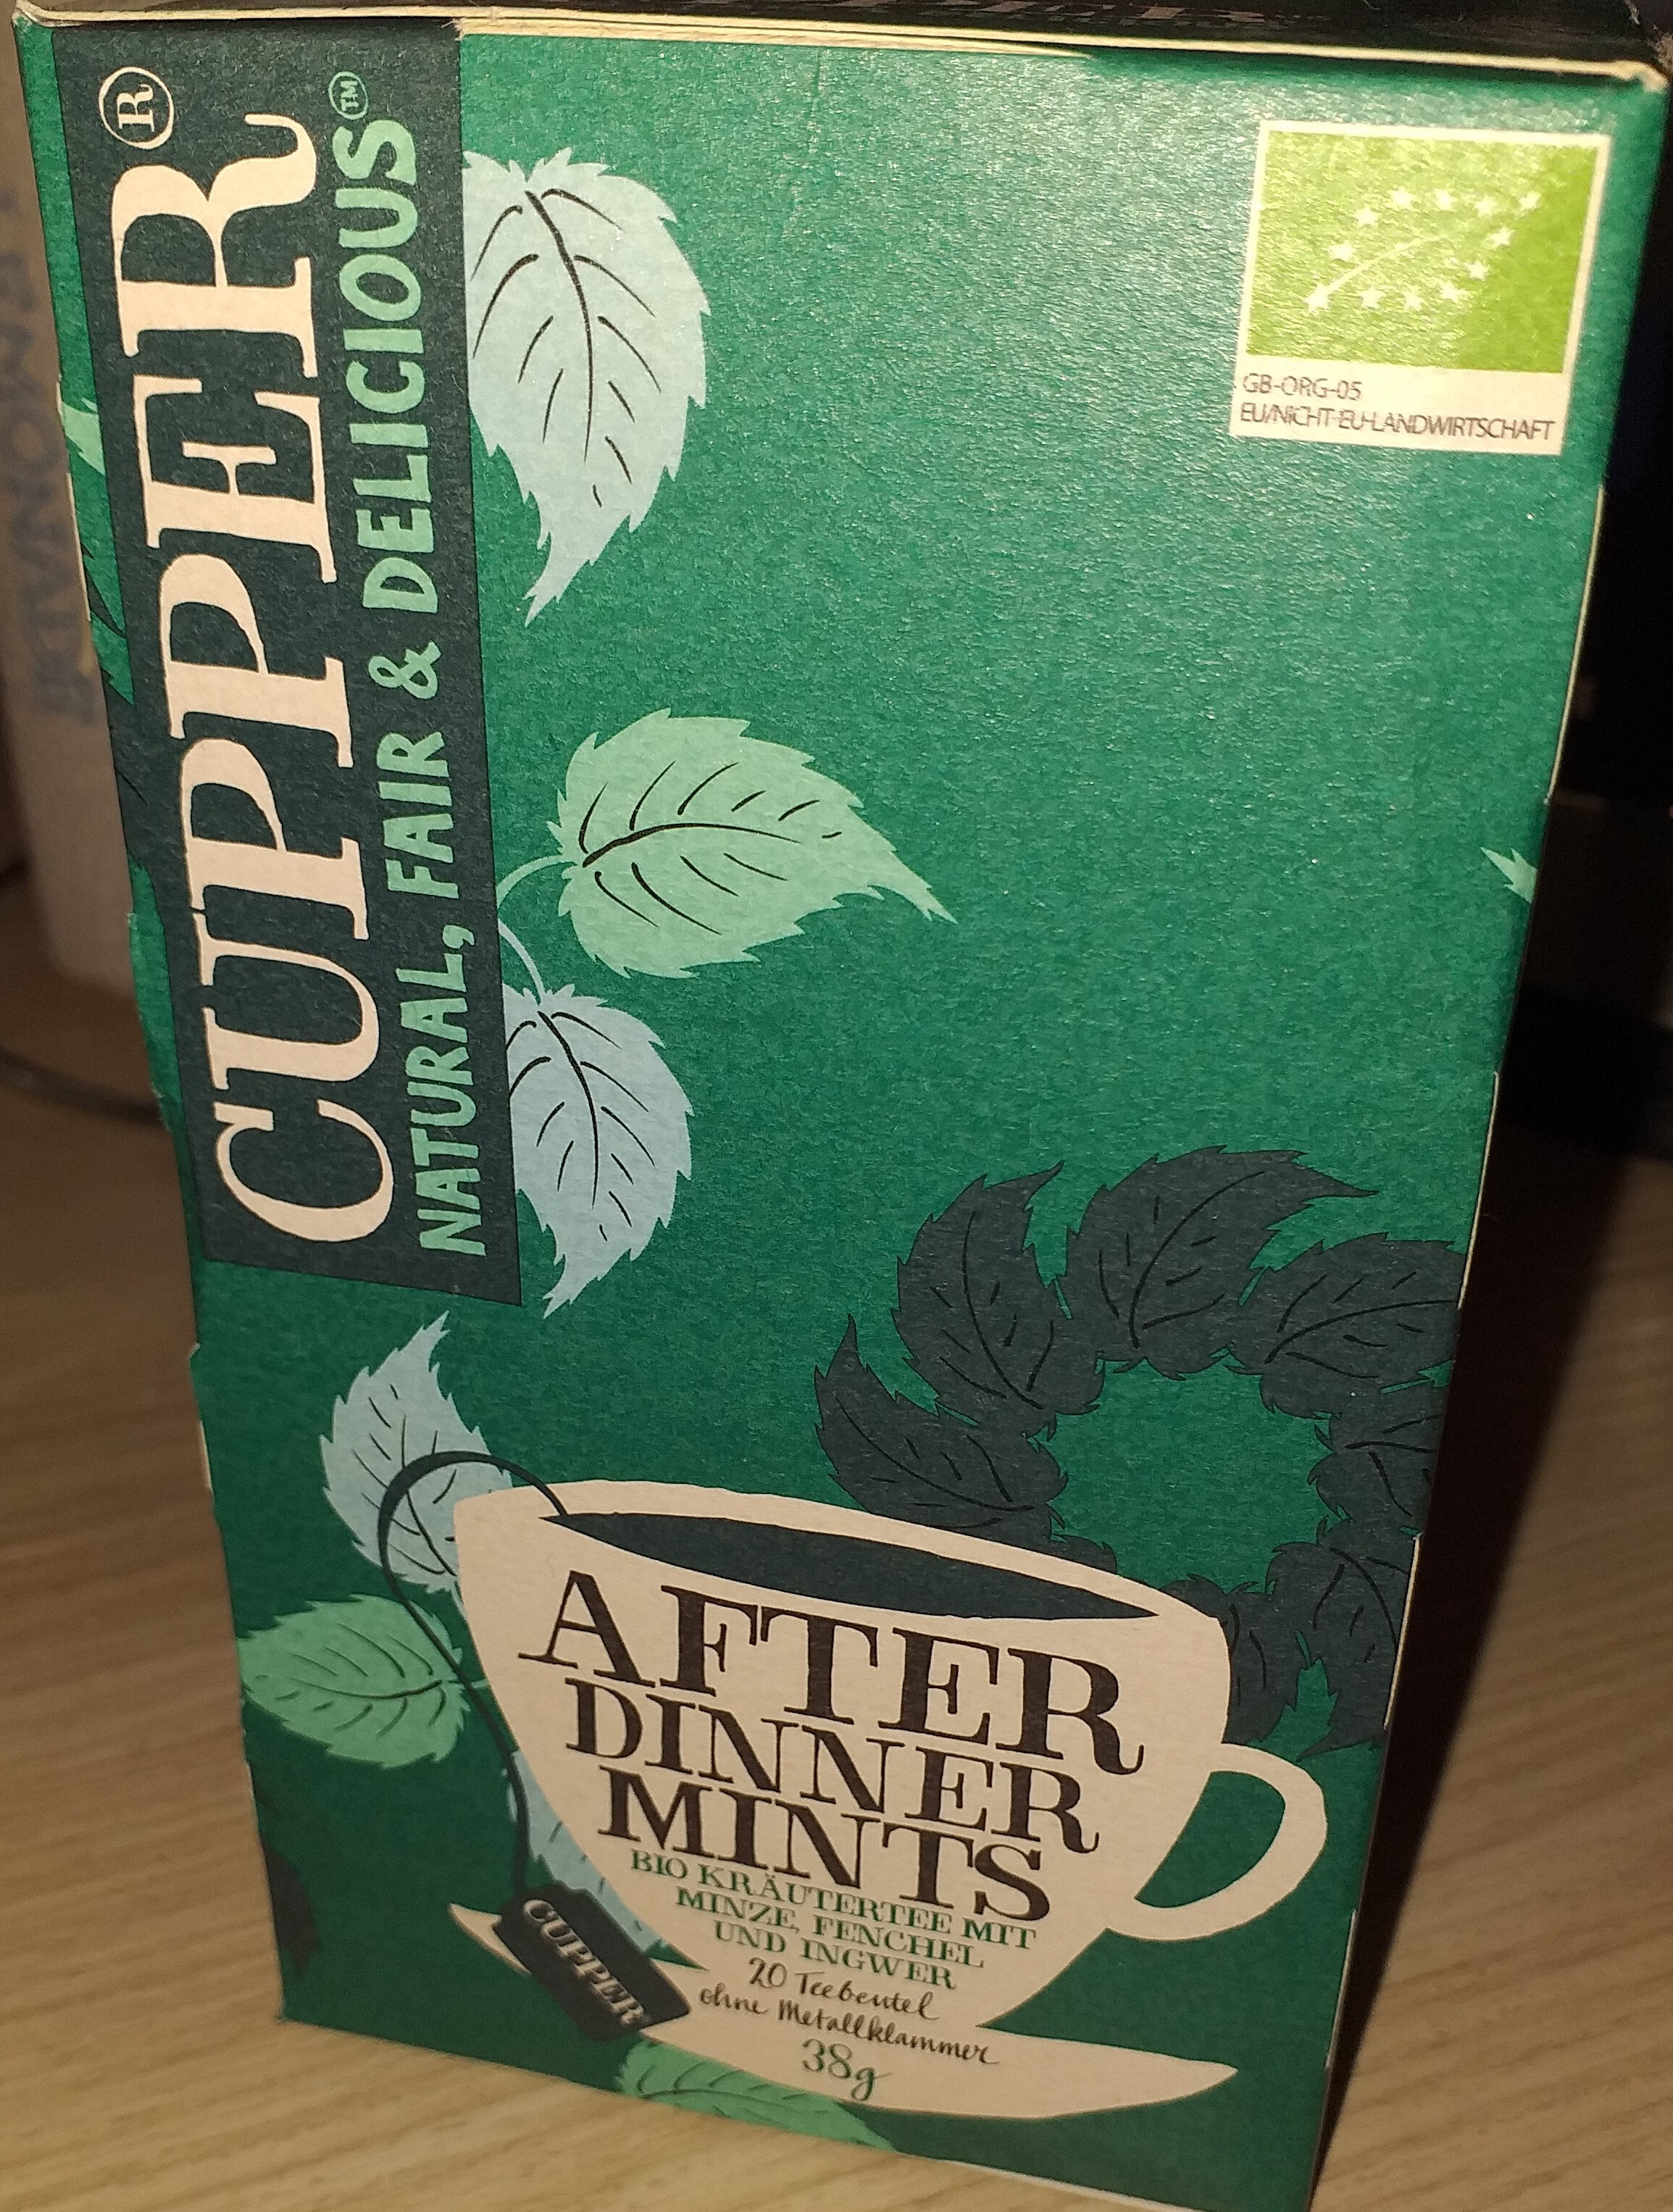 Cupper after dinner mints - Product - nl